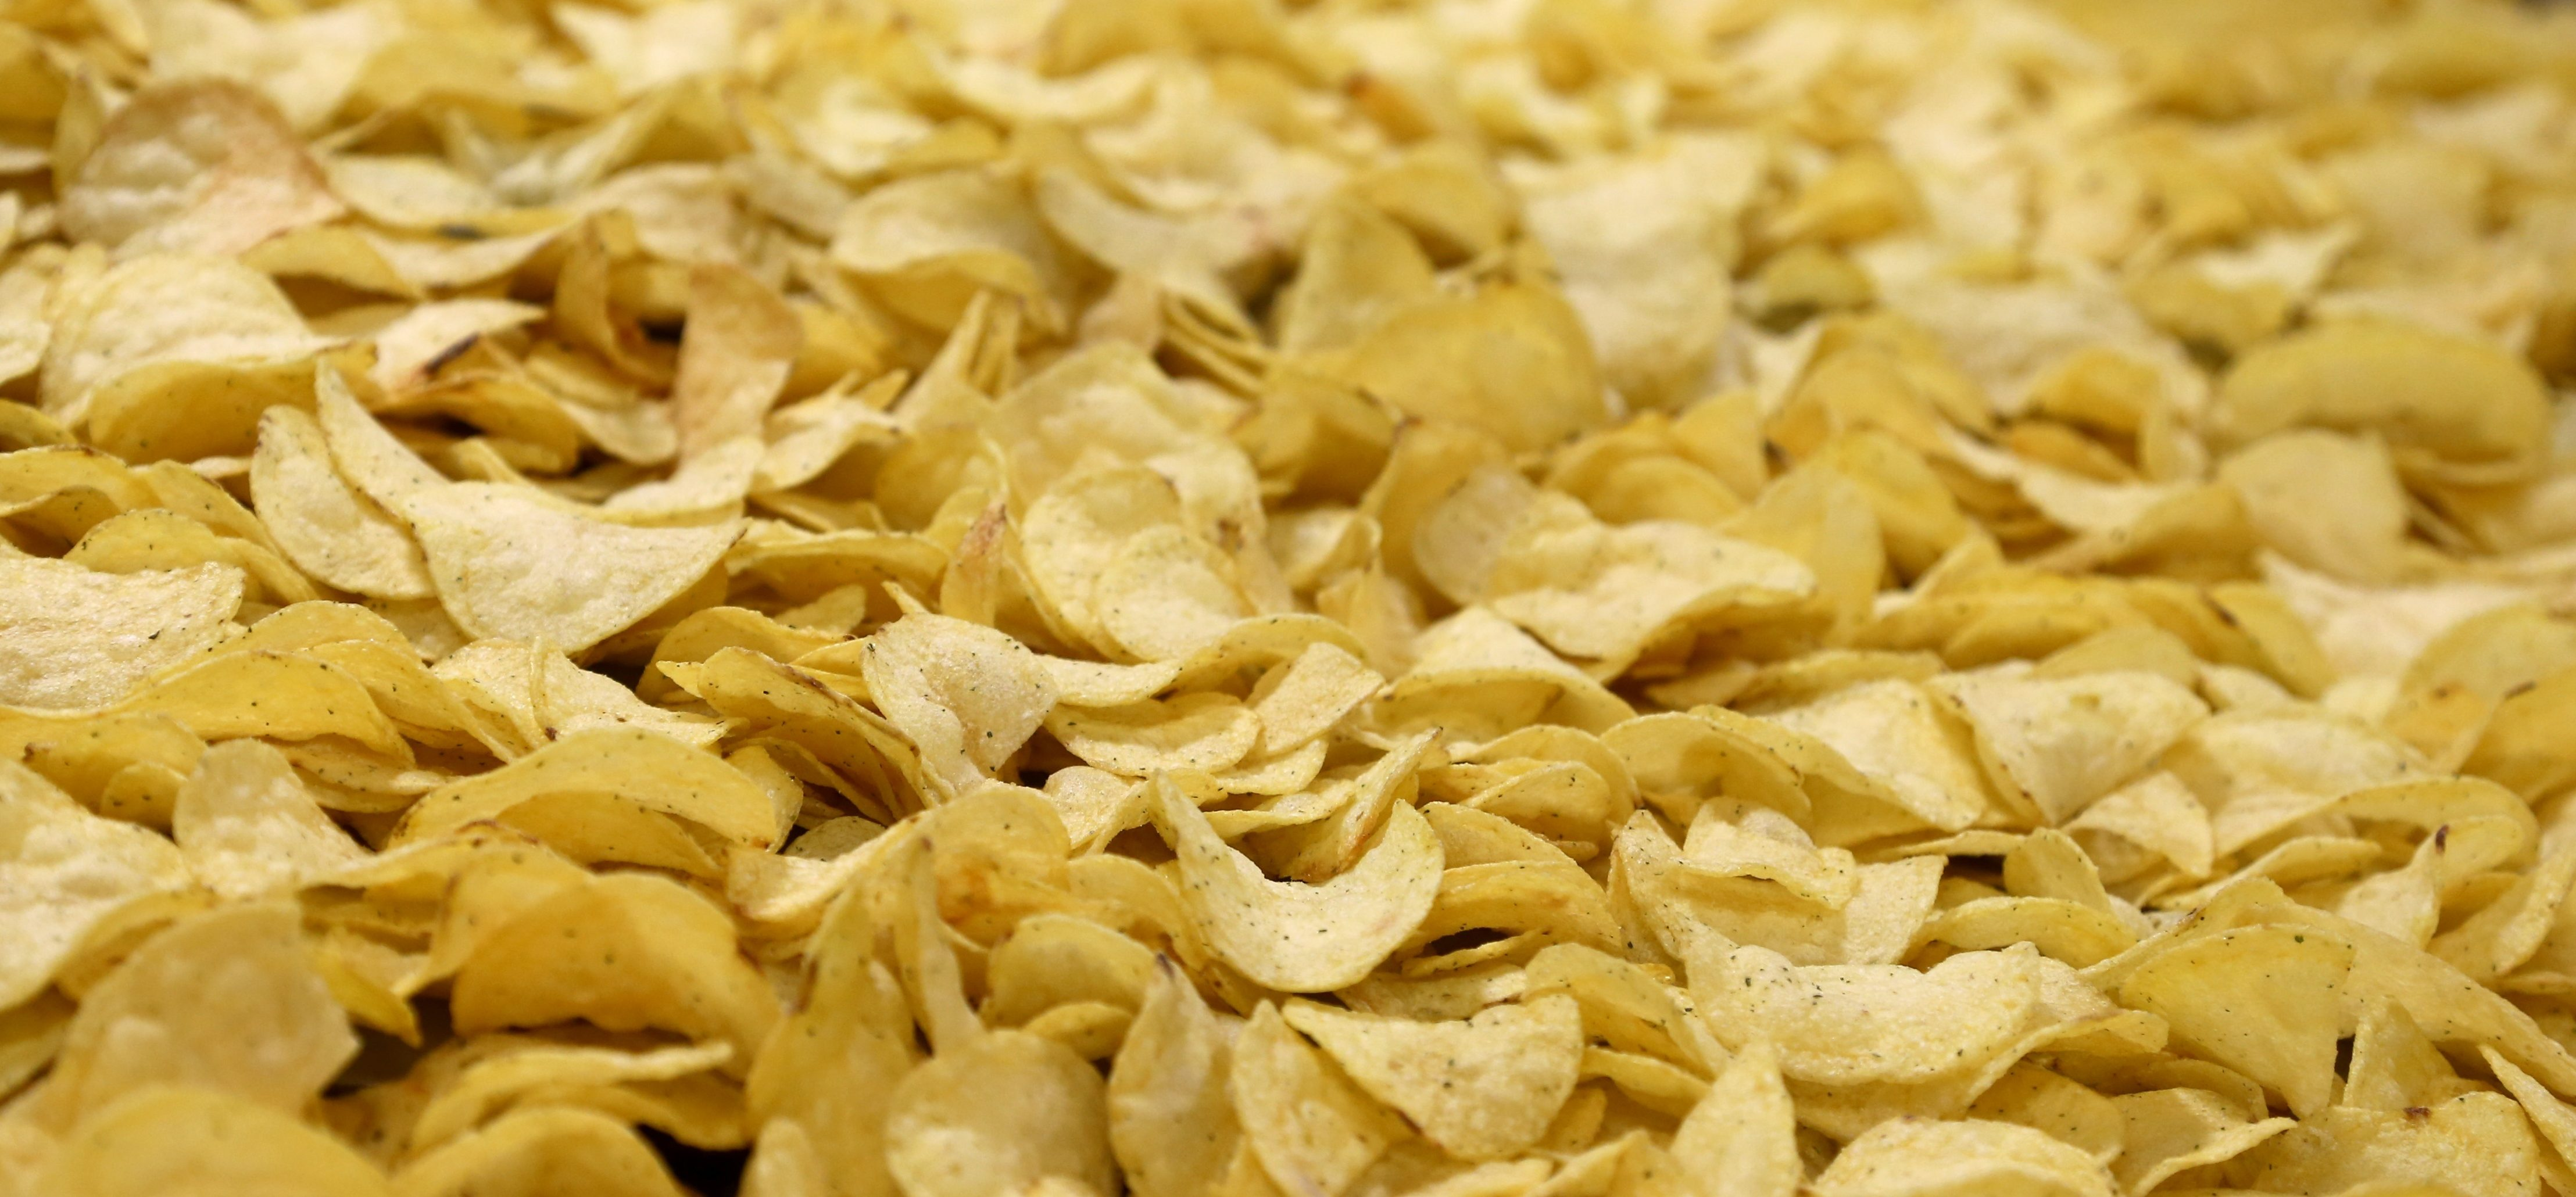 The Co-op is selling cauliflower cheese flavoured crisps for Christmas